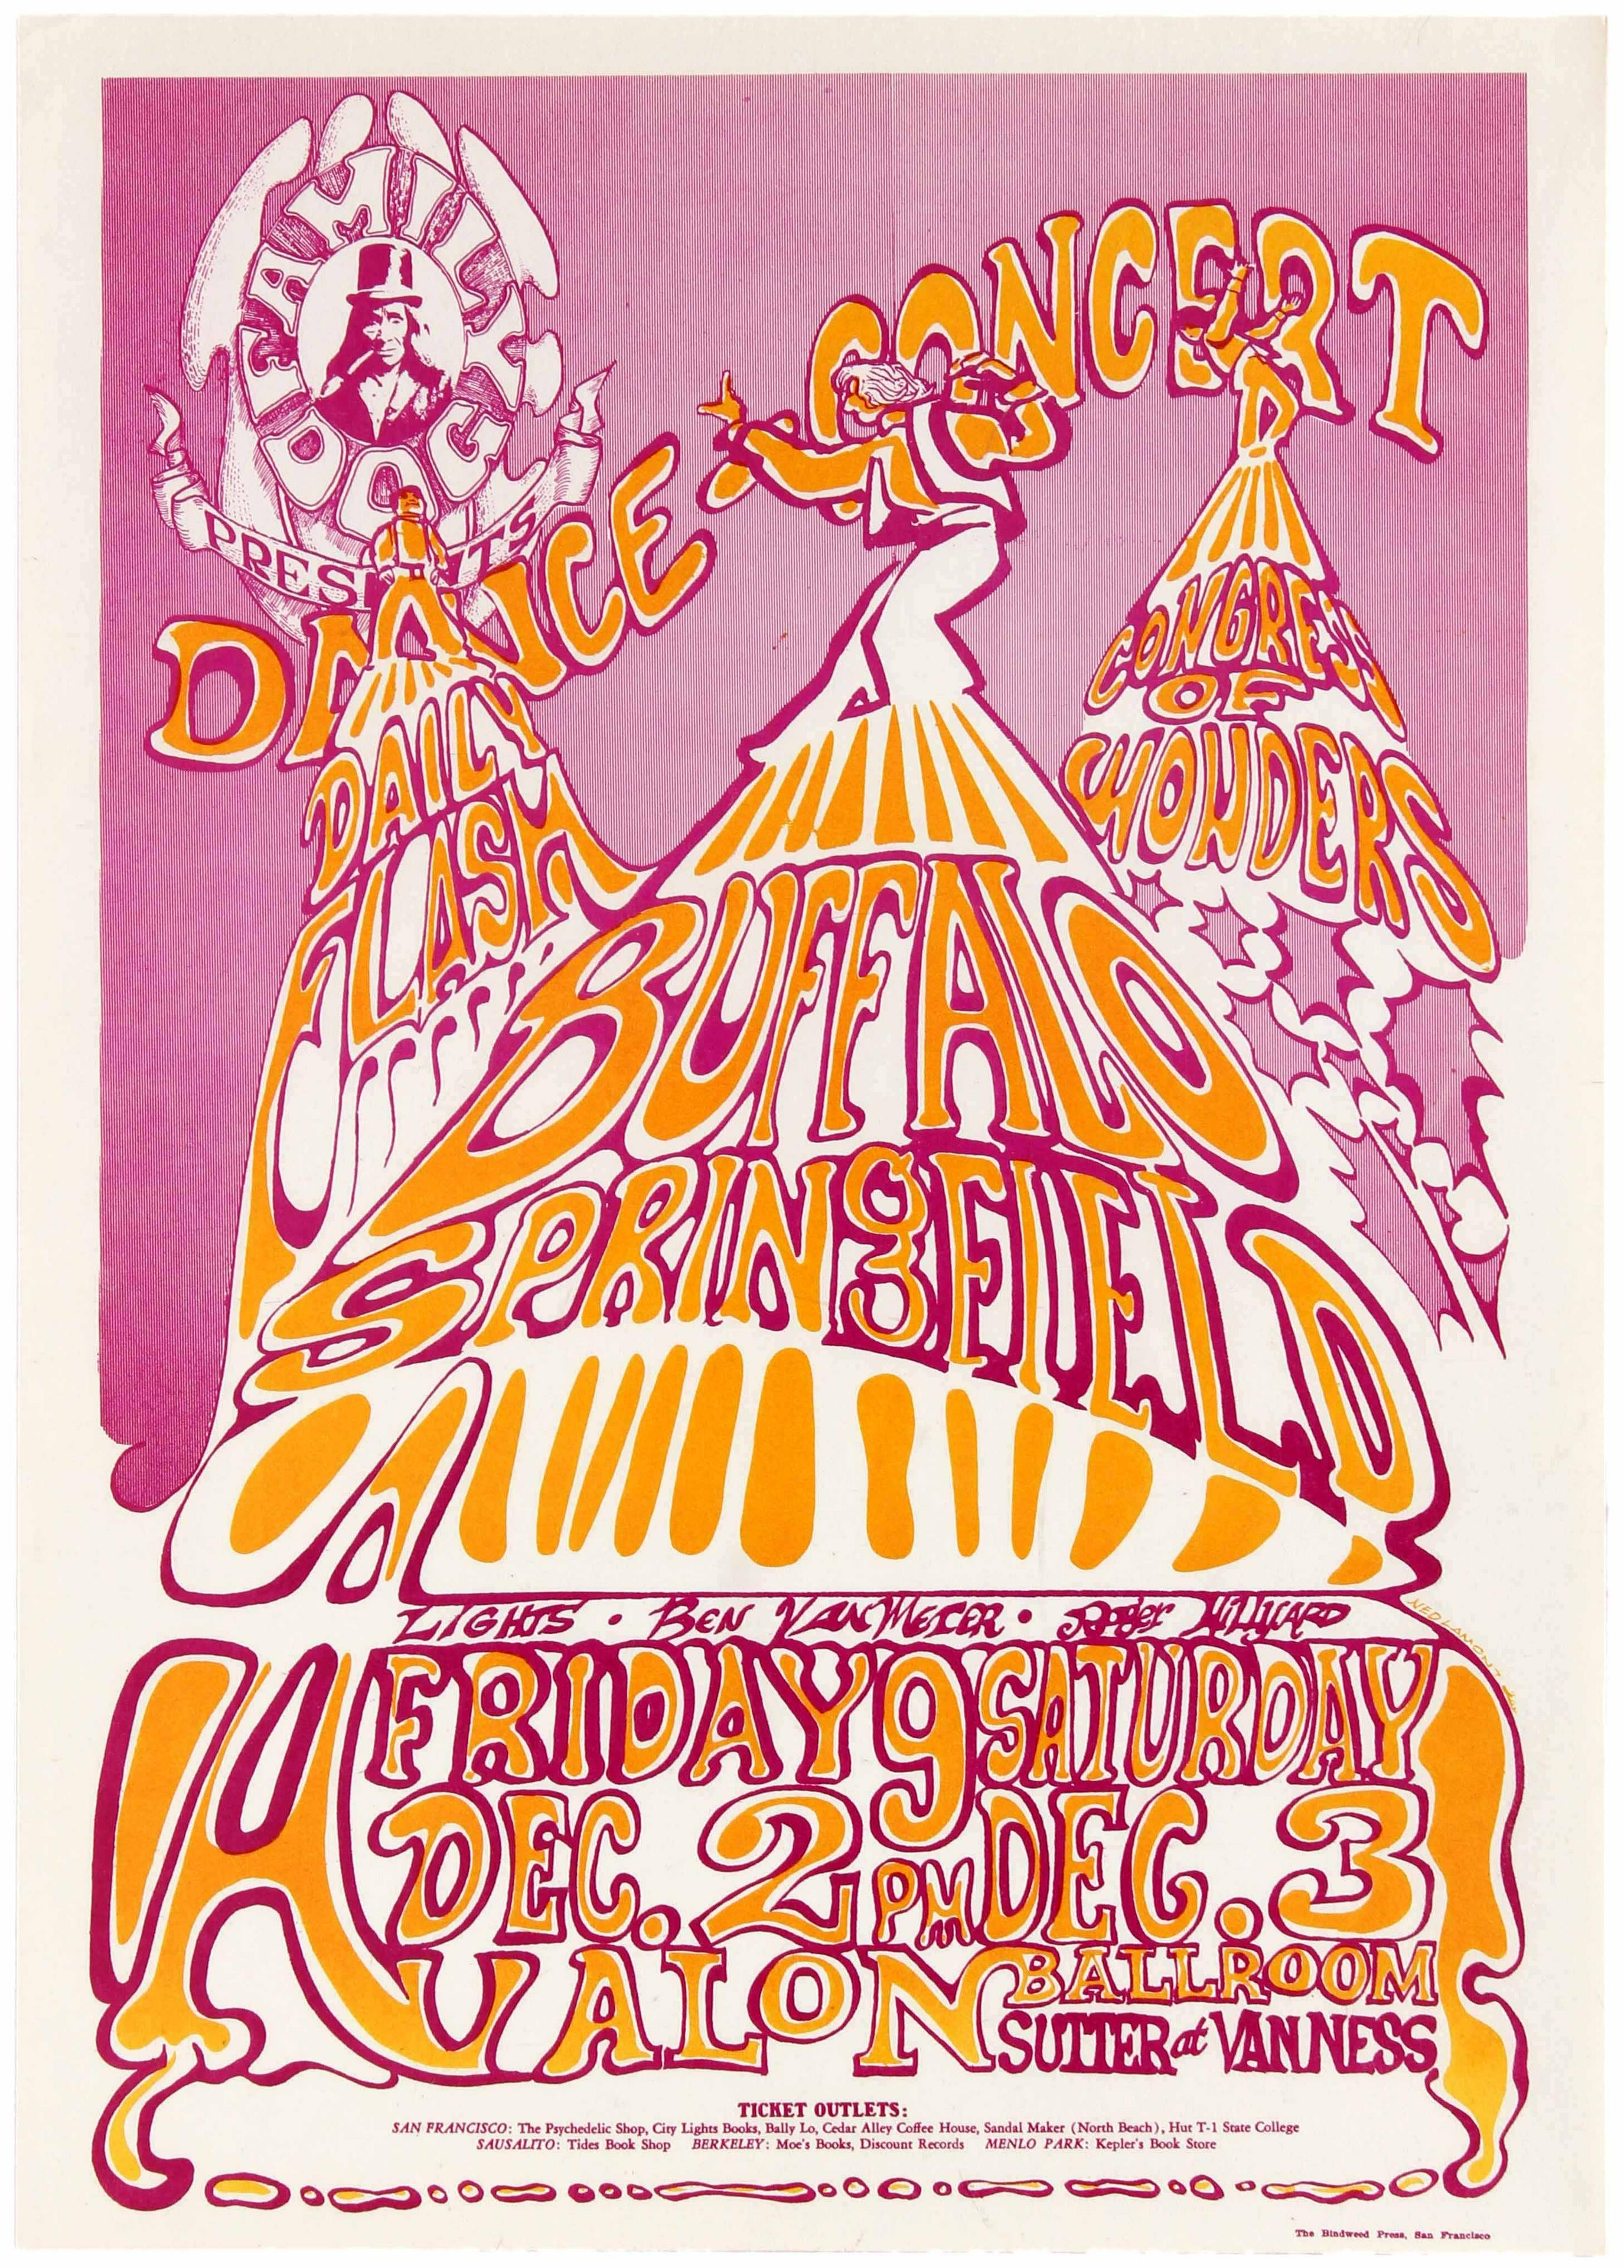 1 Psychedelic Rock Buffalo Springfield Avalon 1966 AntikBar Vintage Posters Auction 25April2020